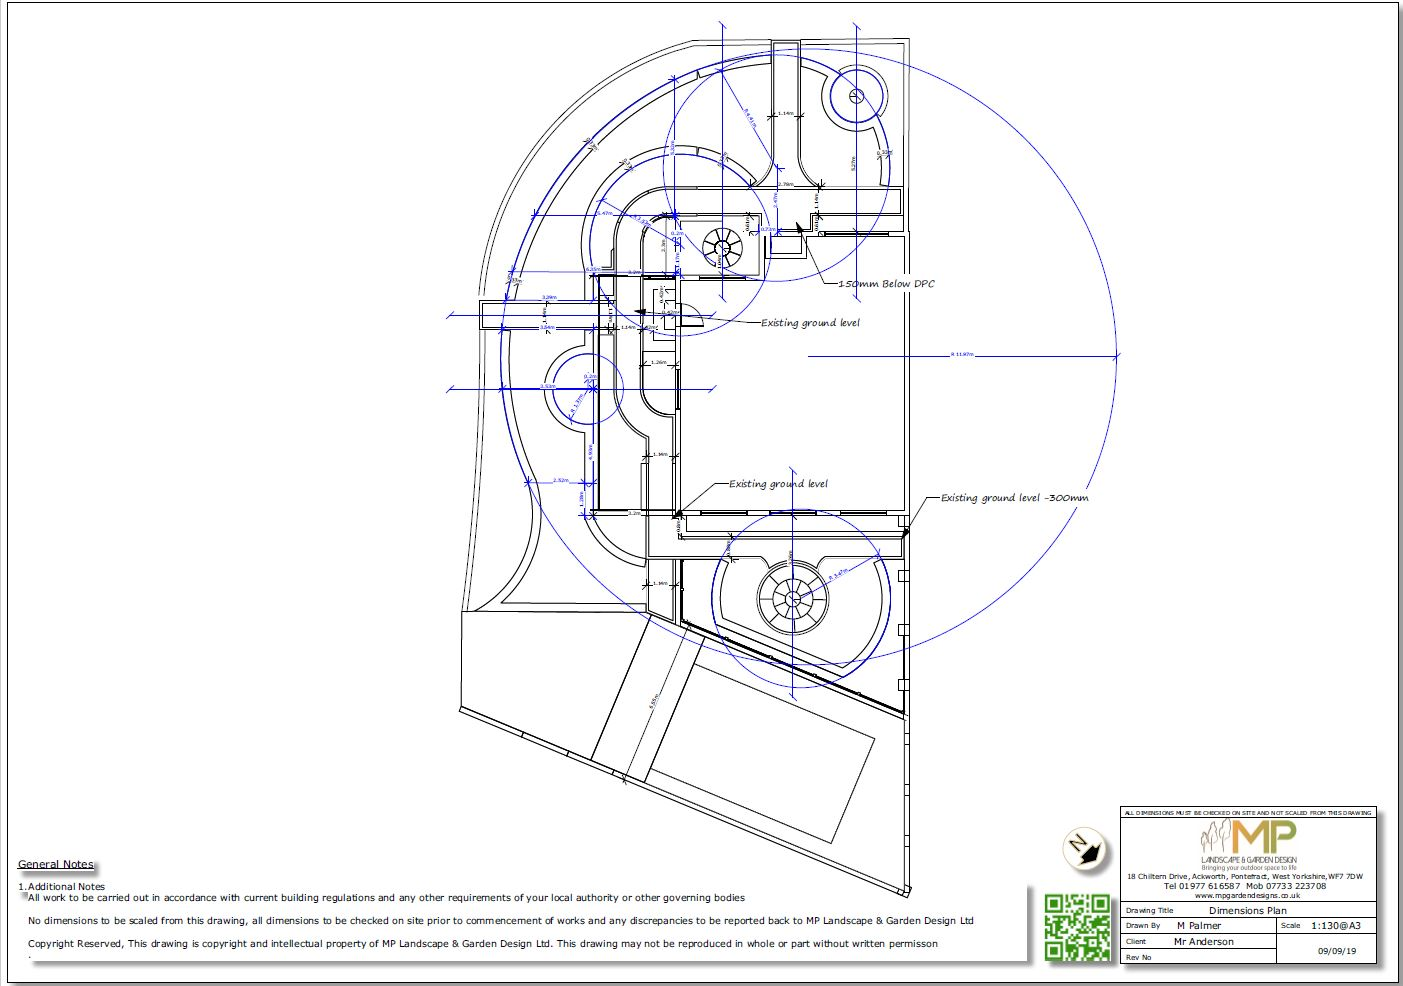 4, Garden layout dimensions plan for a property in Featherstone.